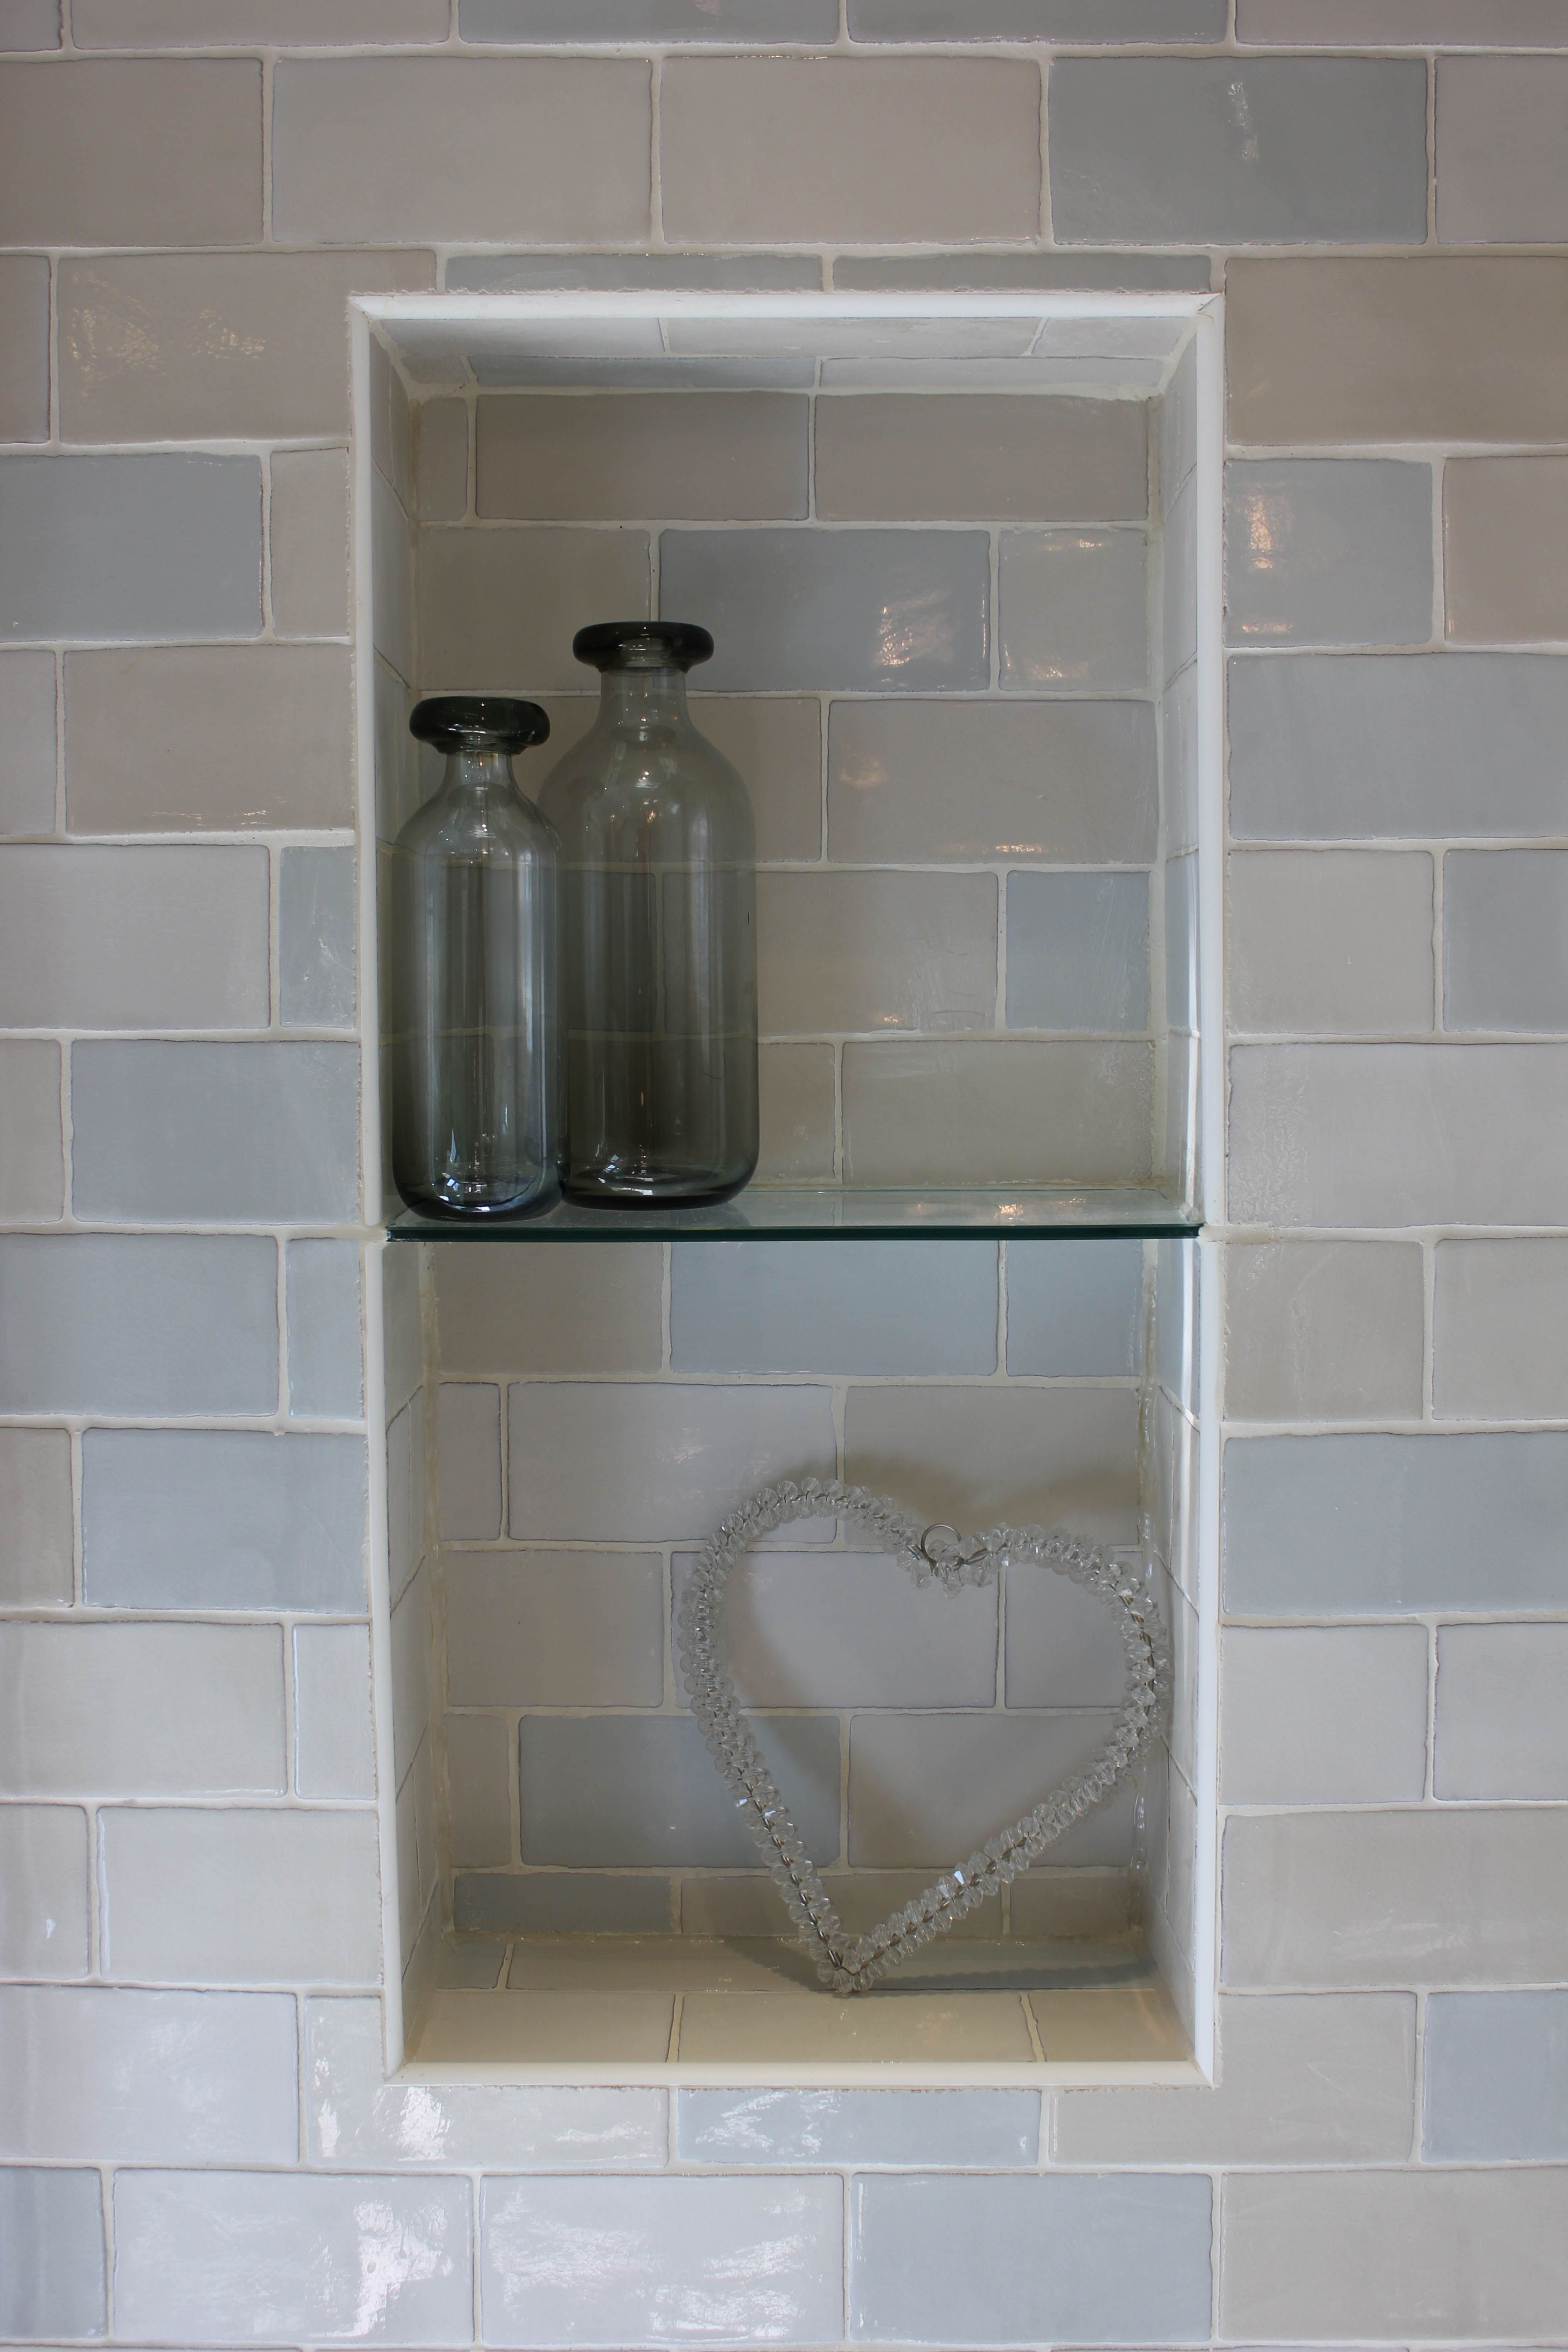 Cute Shower Shelves 4 Of Them On The Wall Of The Shower